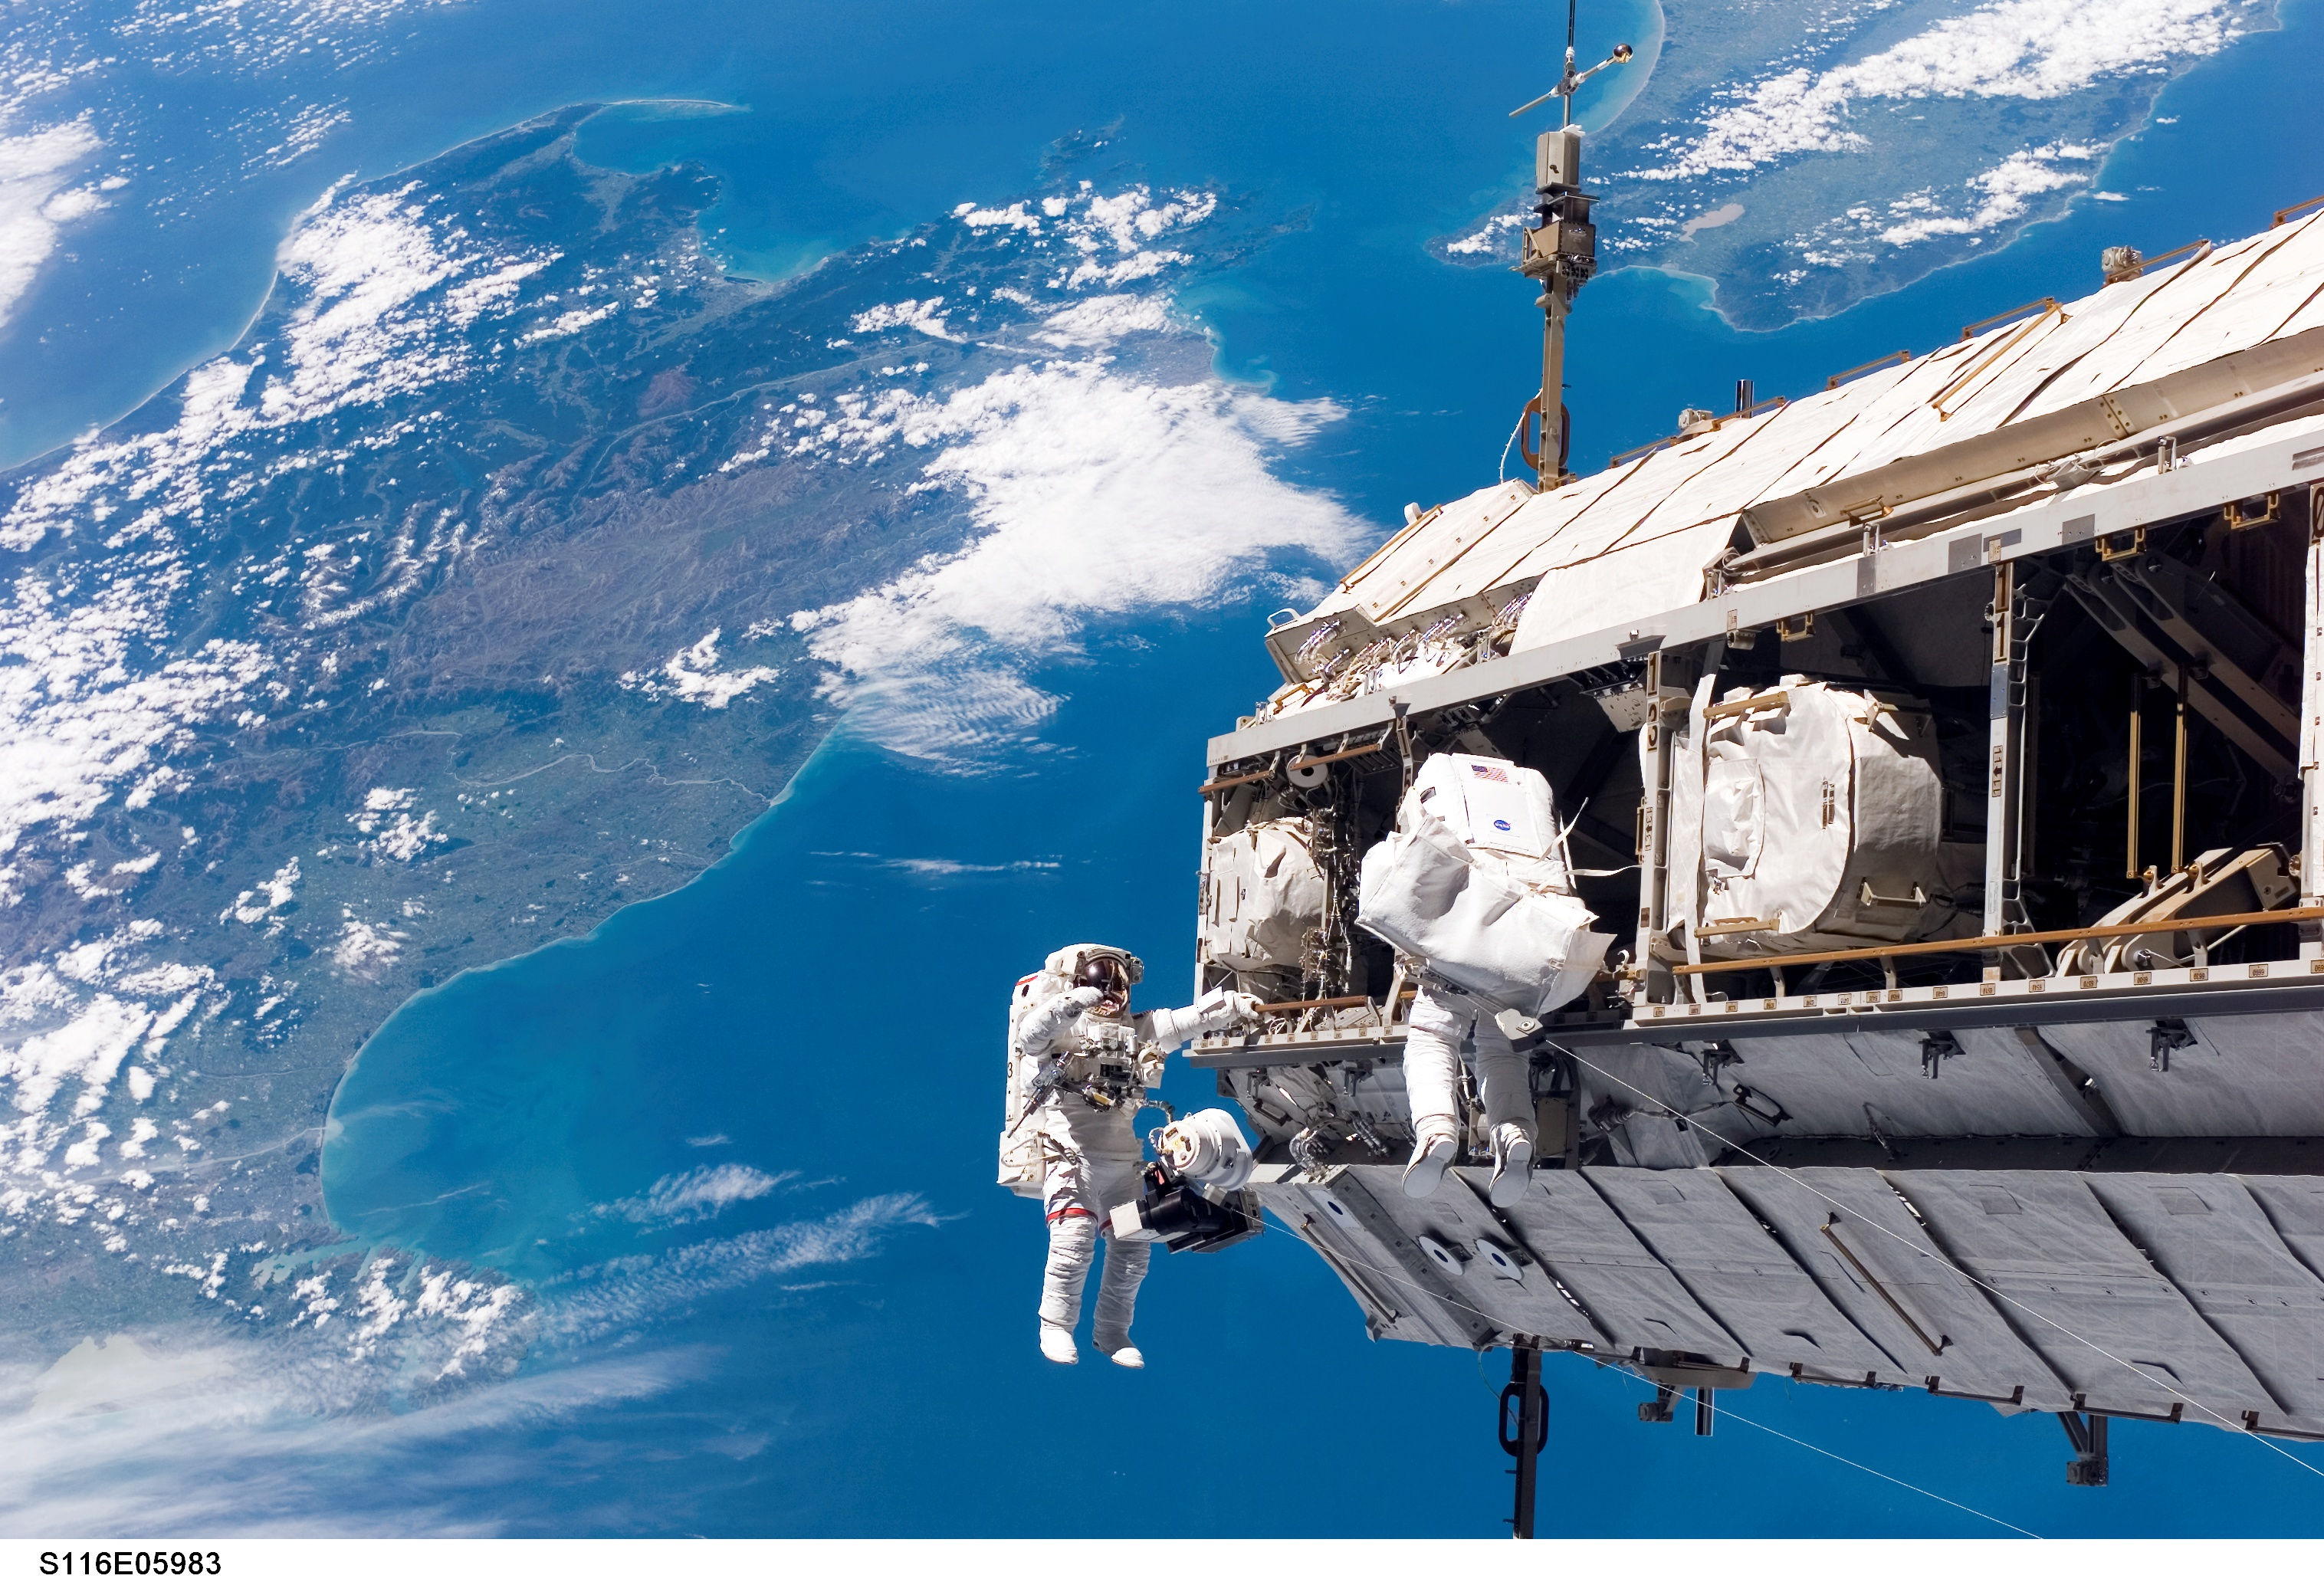 Space Station Photo Highlights | NASA